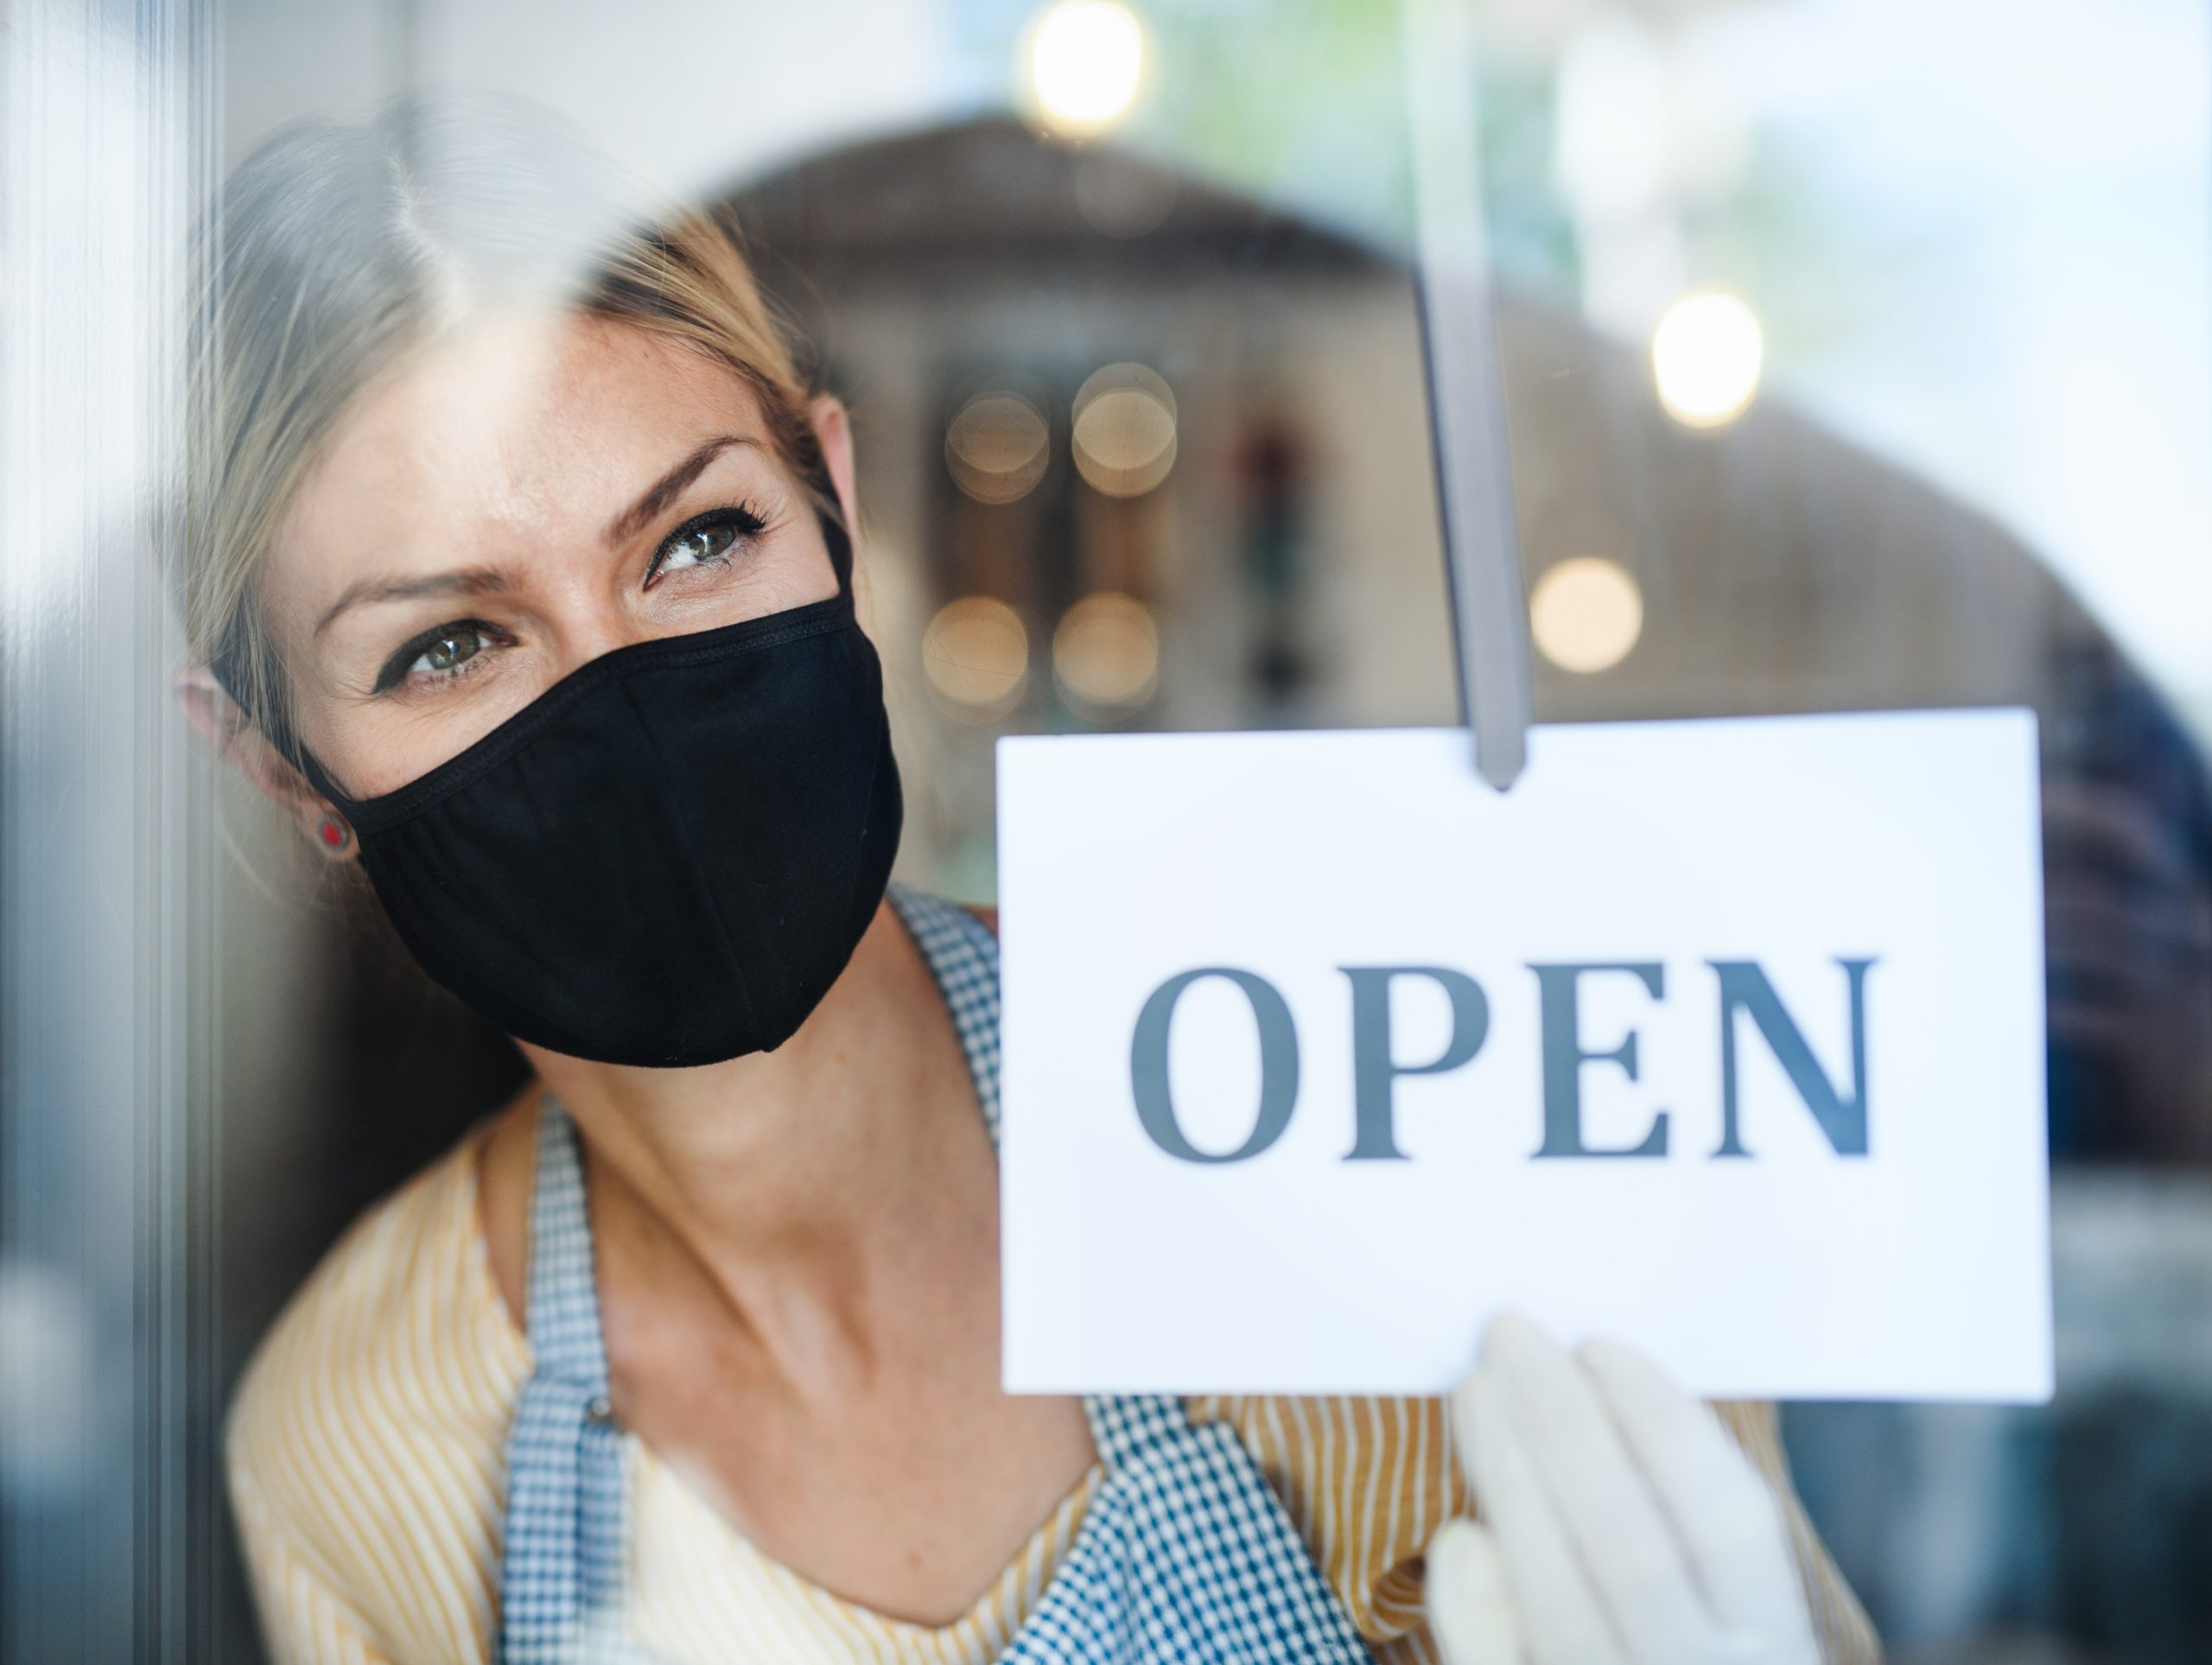 Stay safe, follow simple guidance – says Retail NI